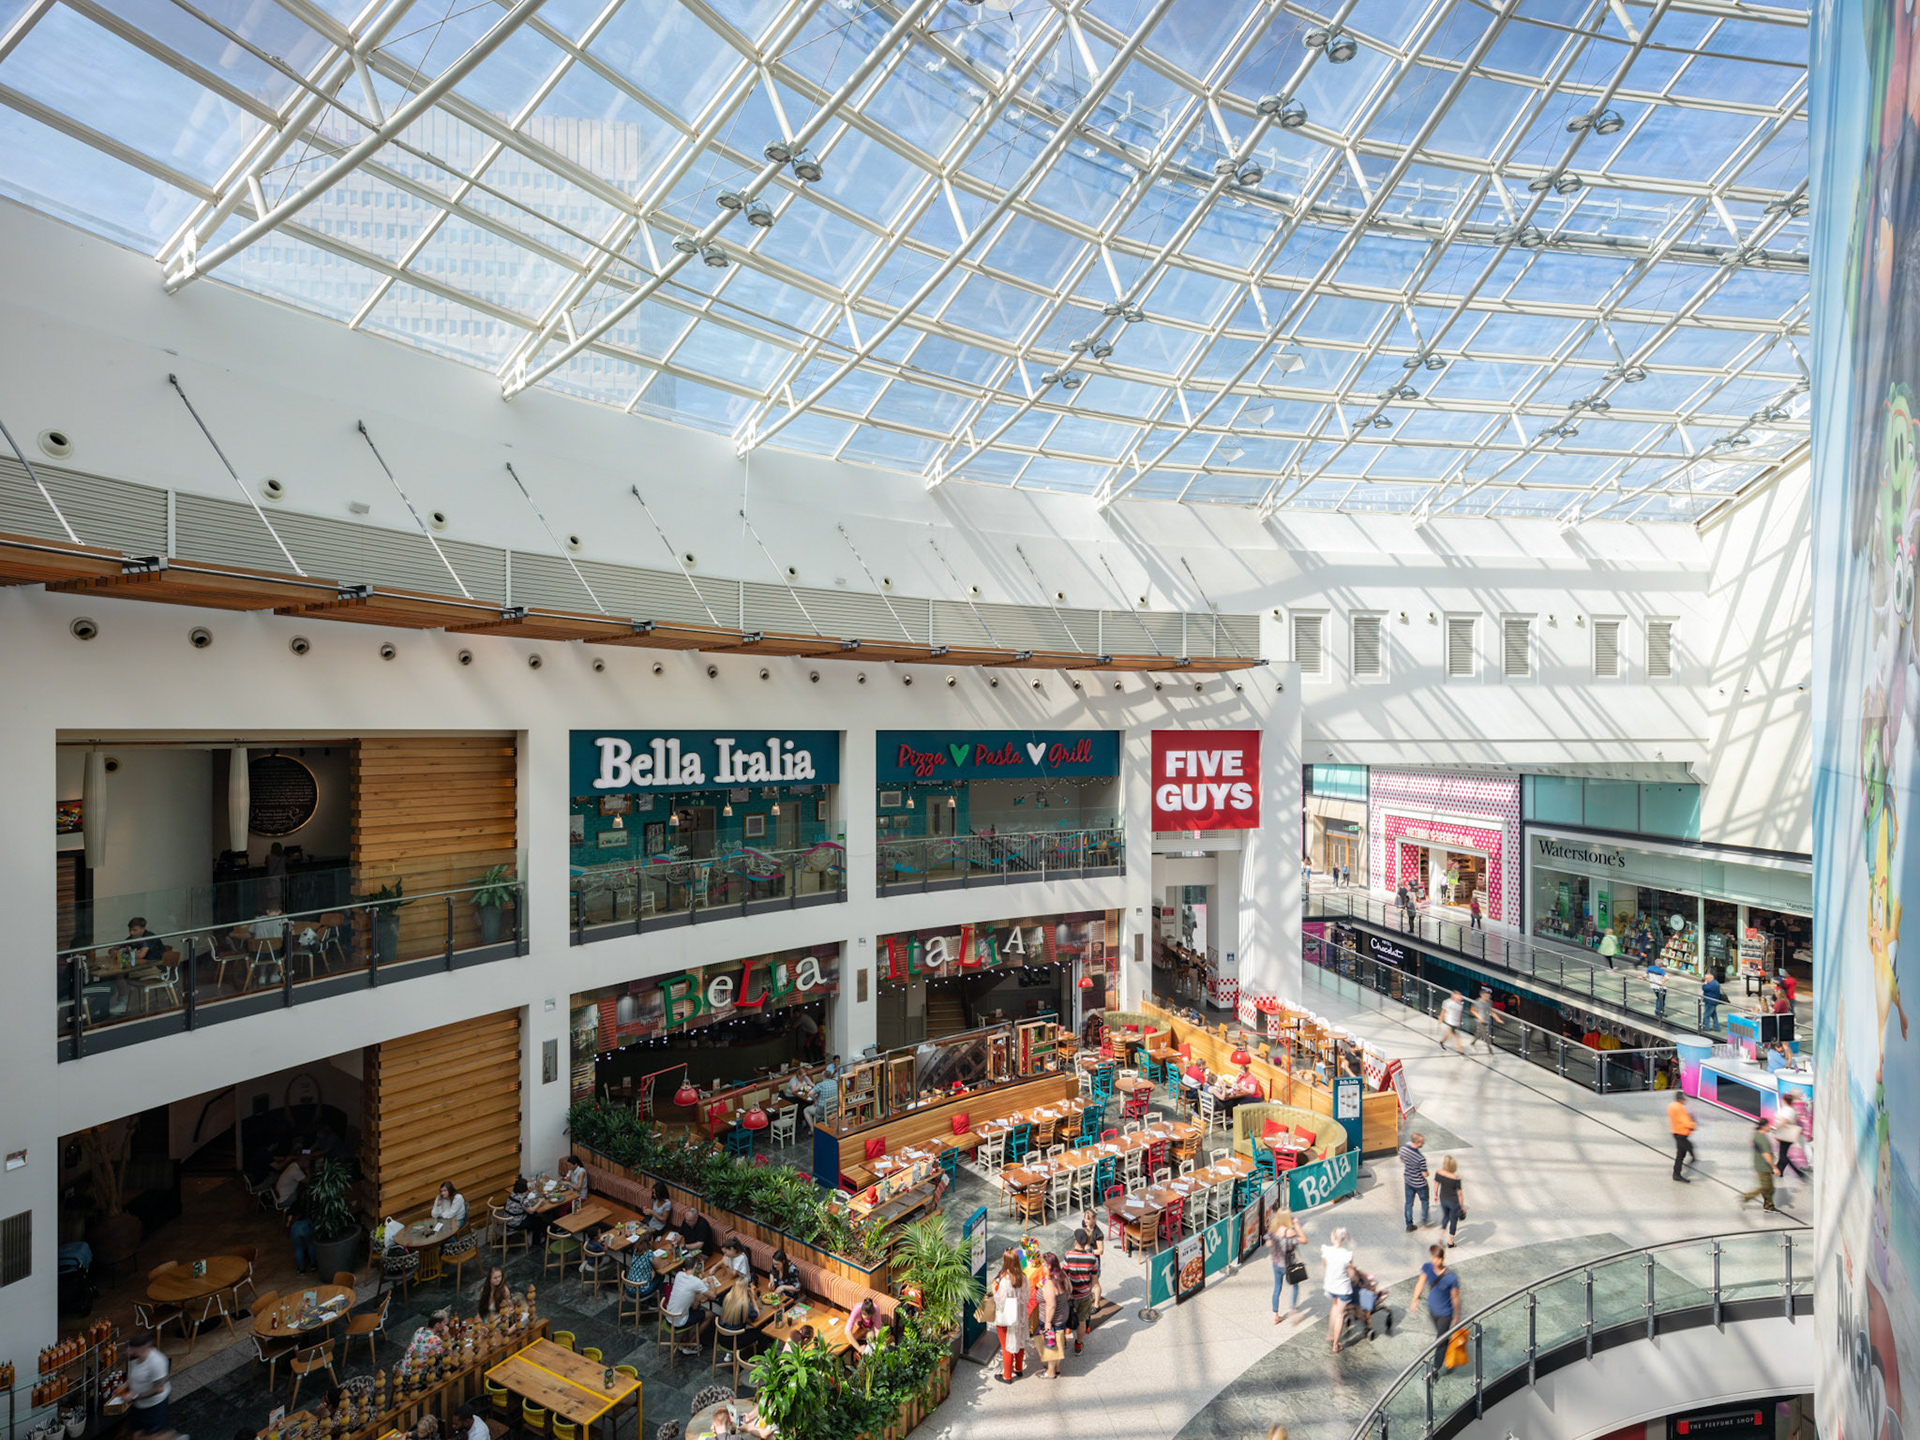 Architecture Photography Manchester Arndale Centre interior featuring five guys